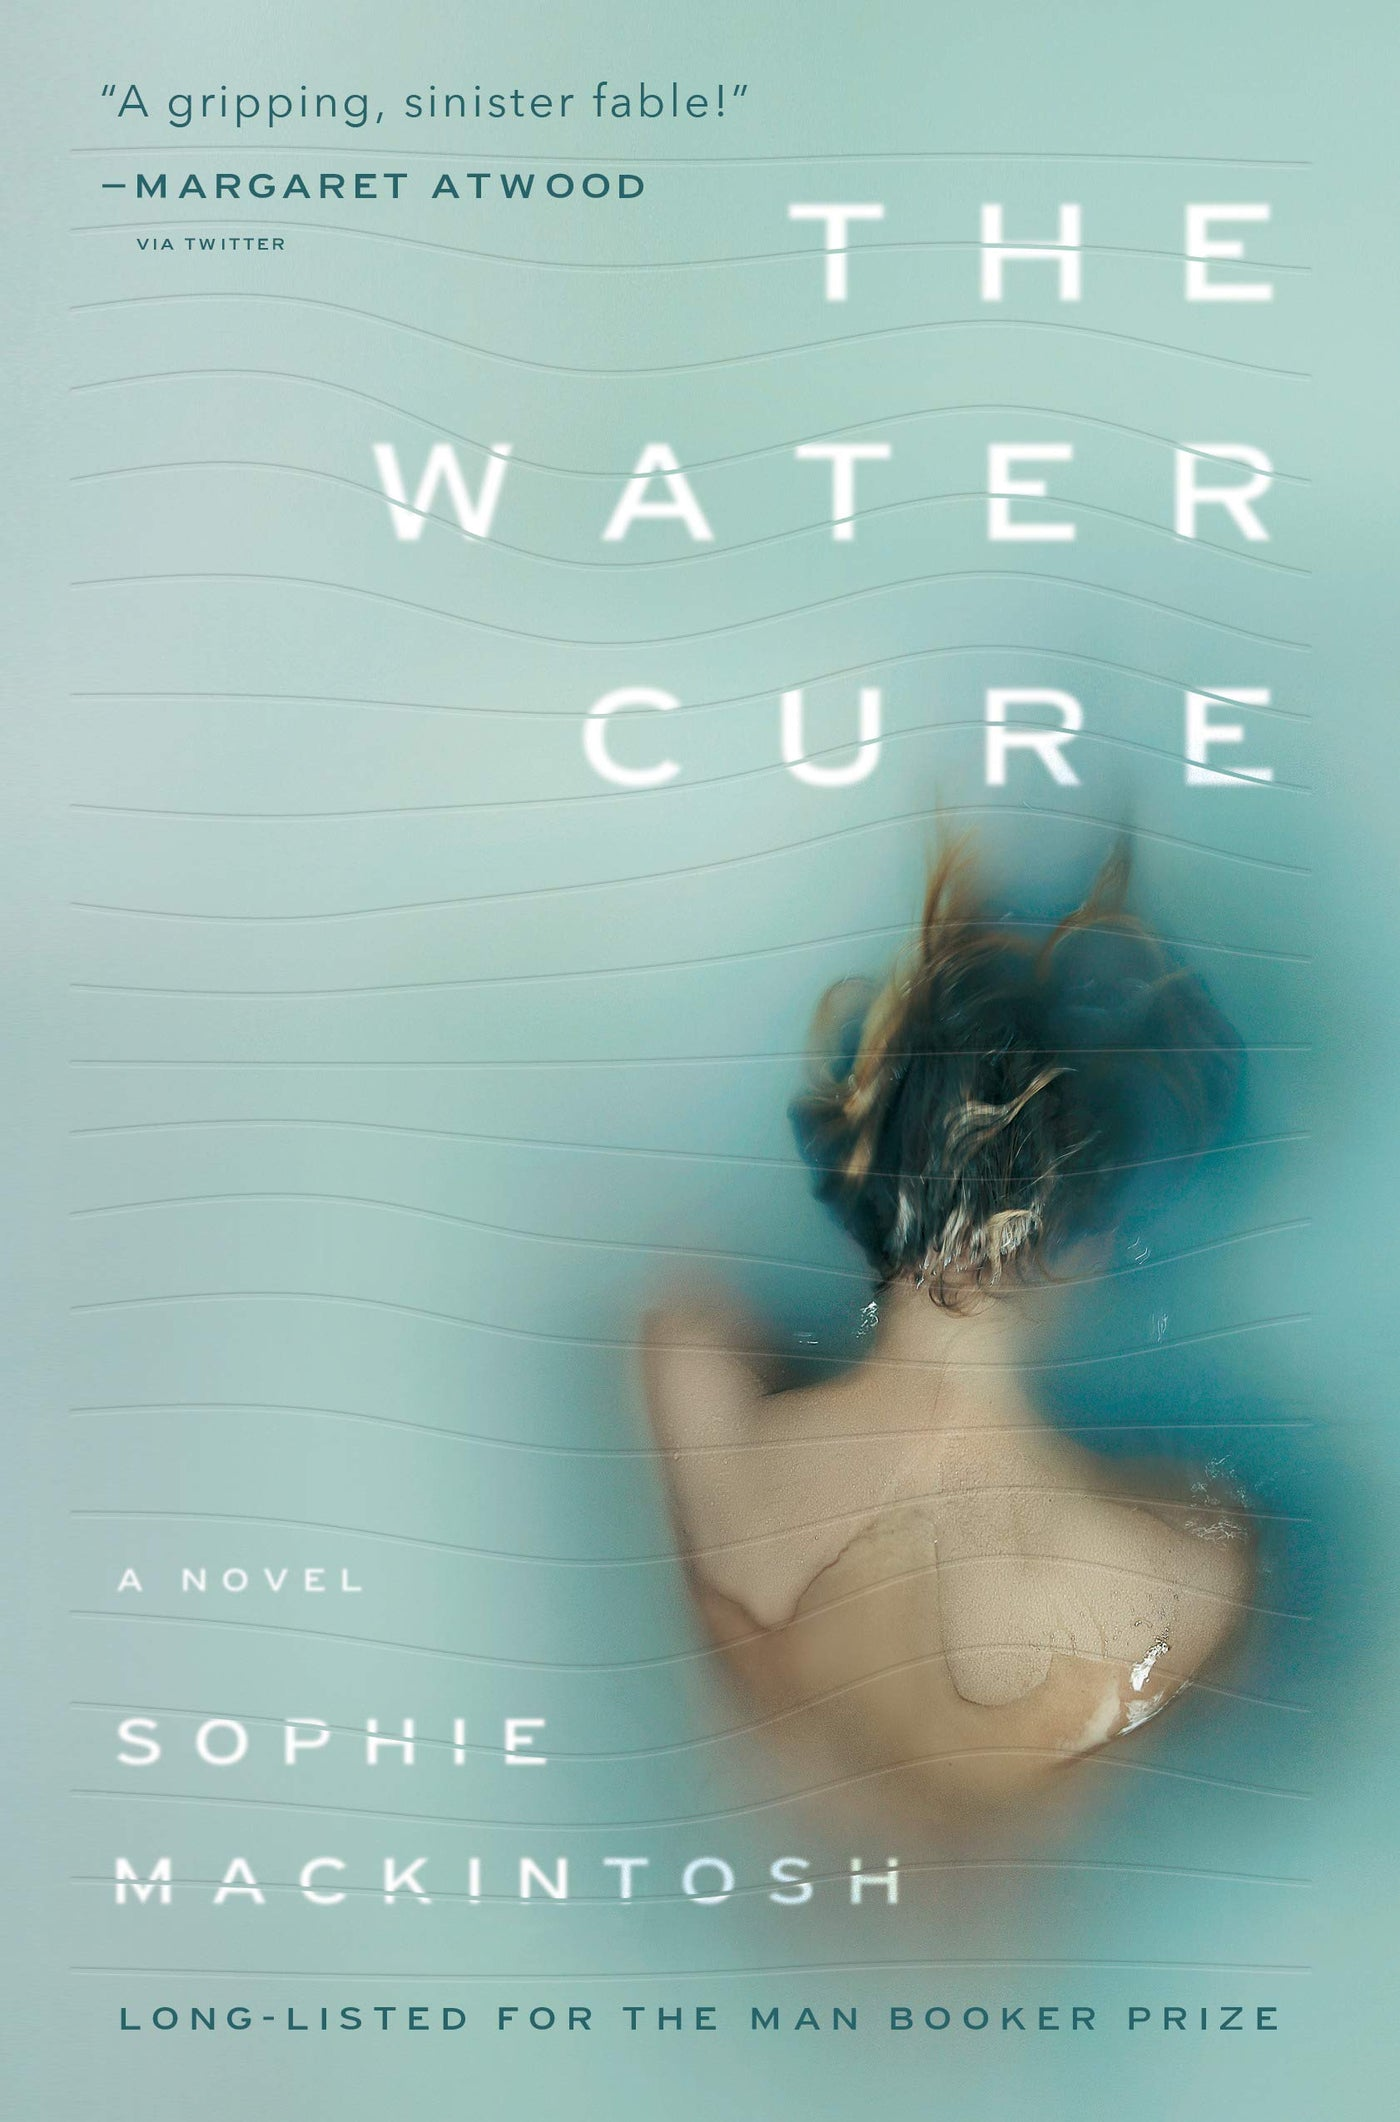 The Water Cure: A Novel by Sophie Mackintosh